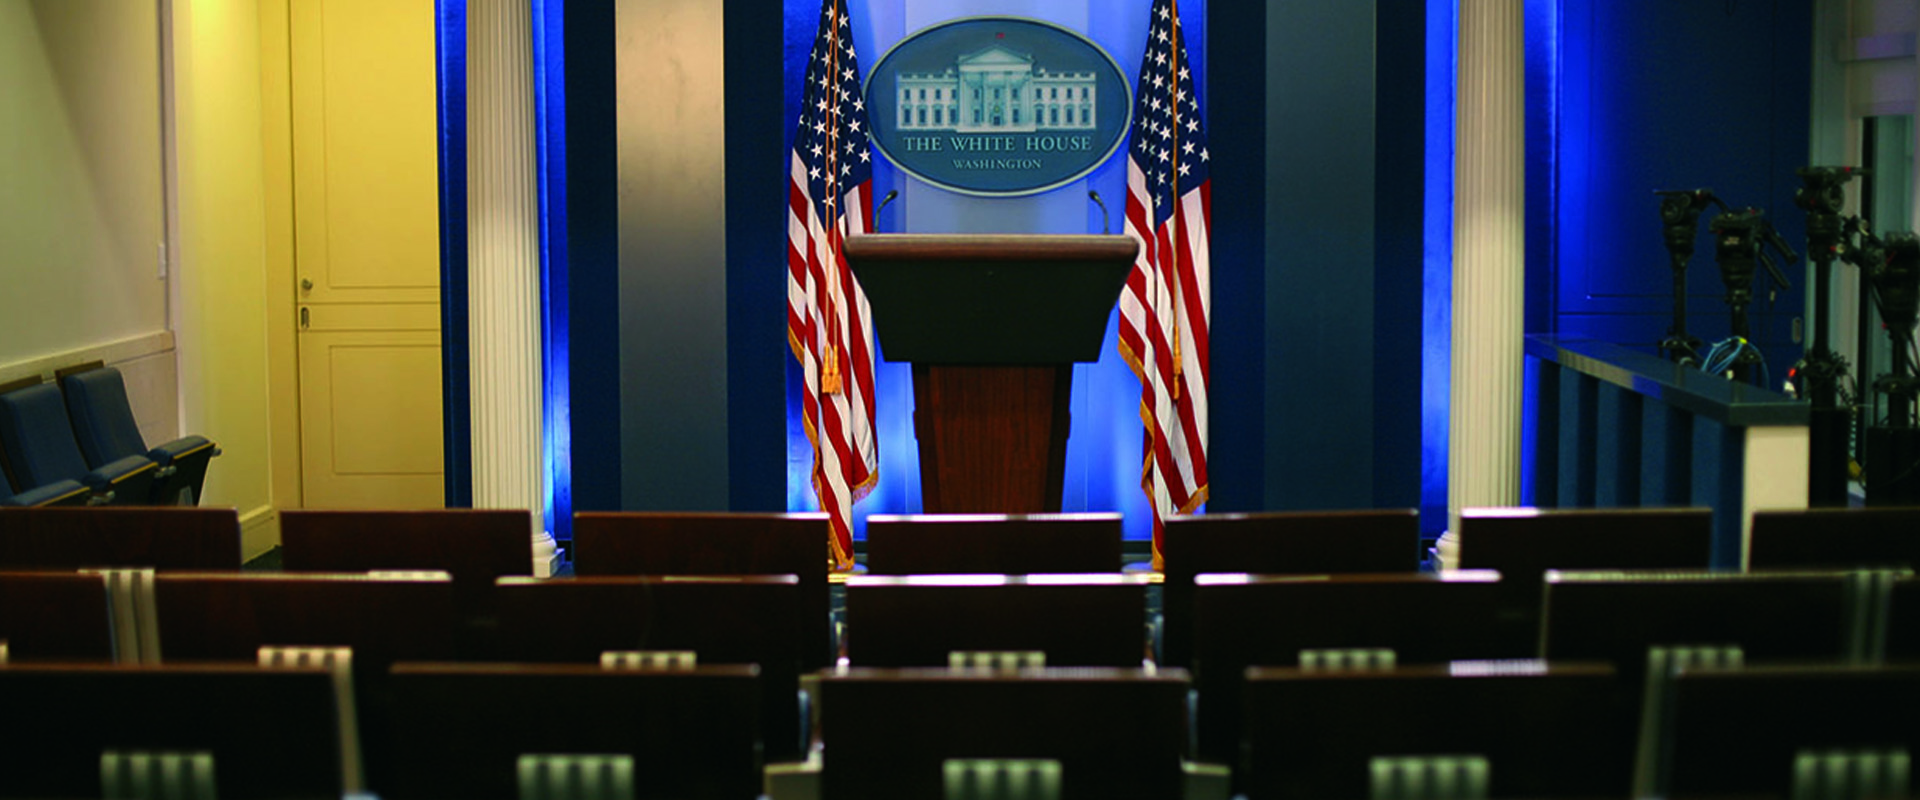 The White House, Press Room